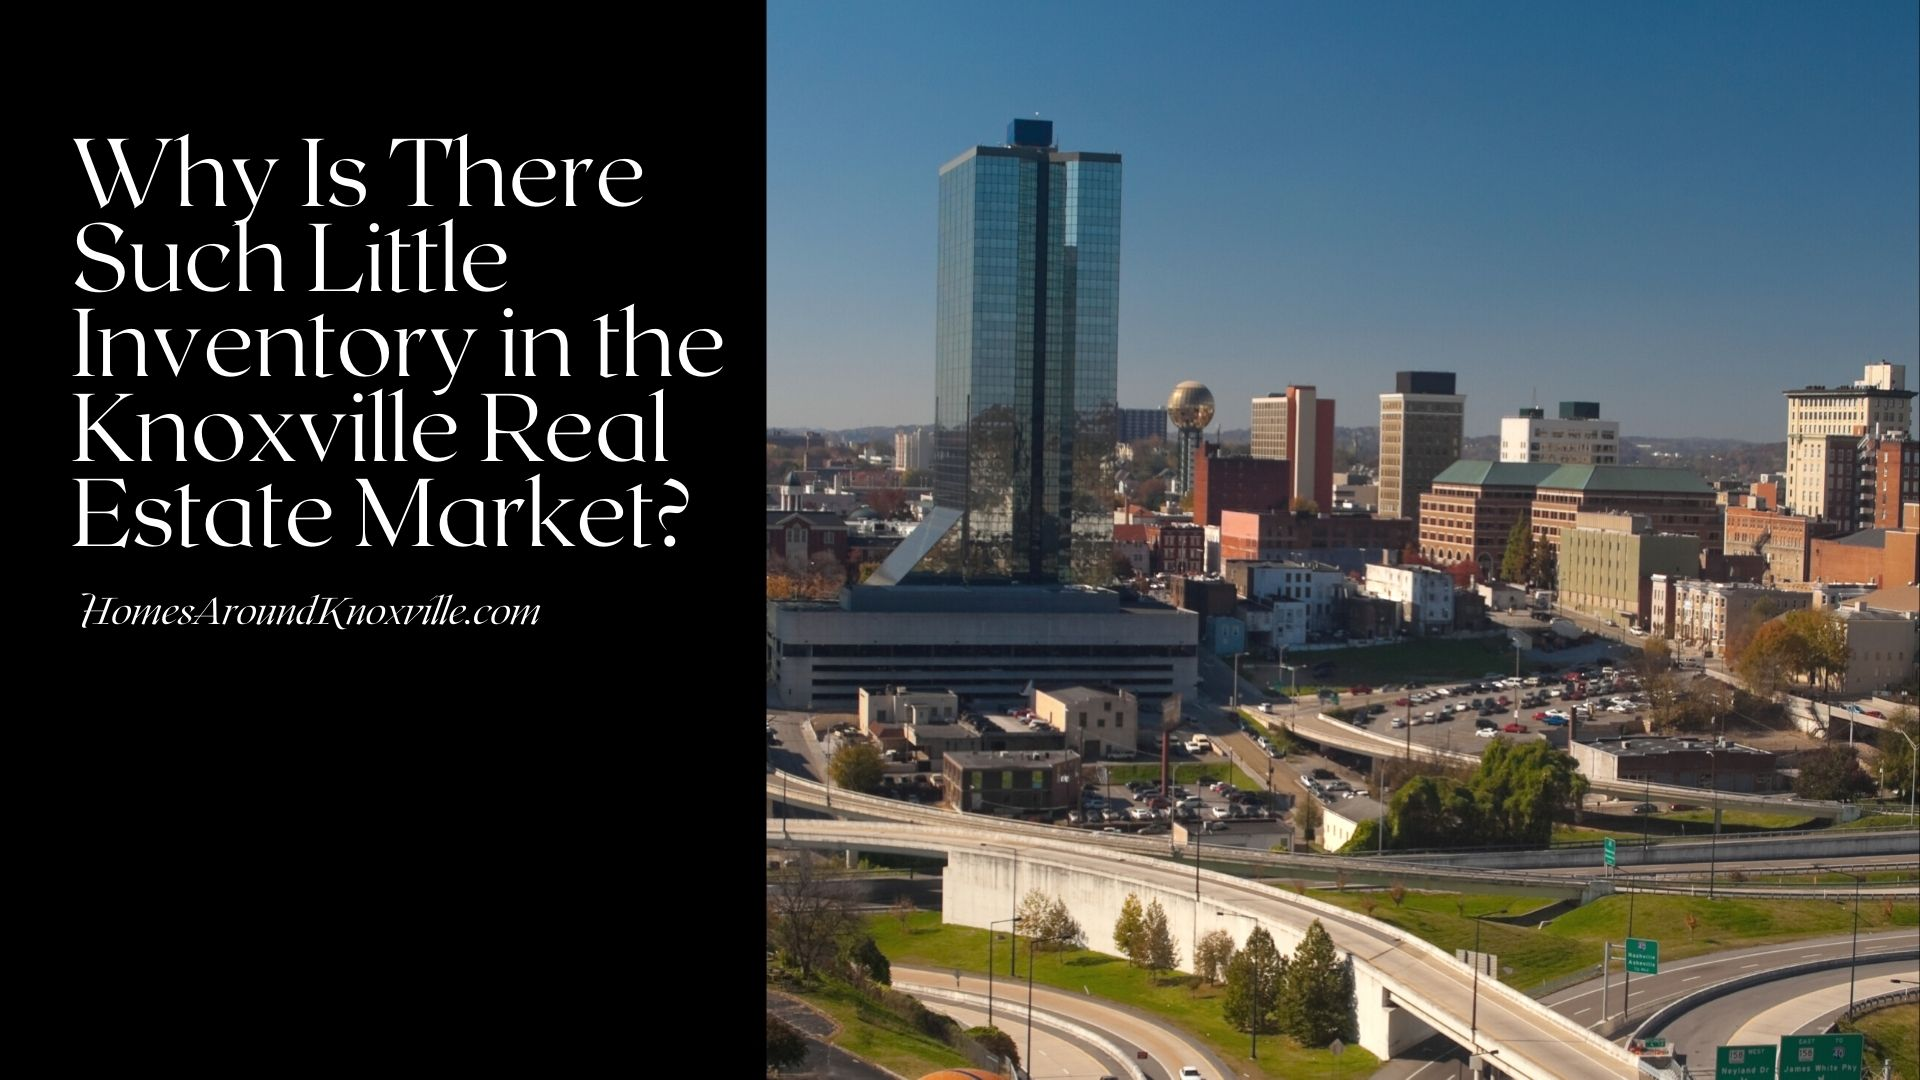 Why Is There Such Little Inventory in the Knoxville Real Estate Market?